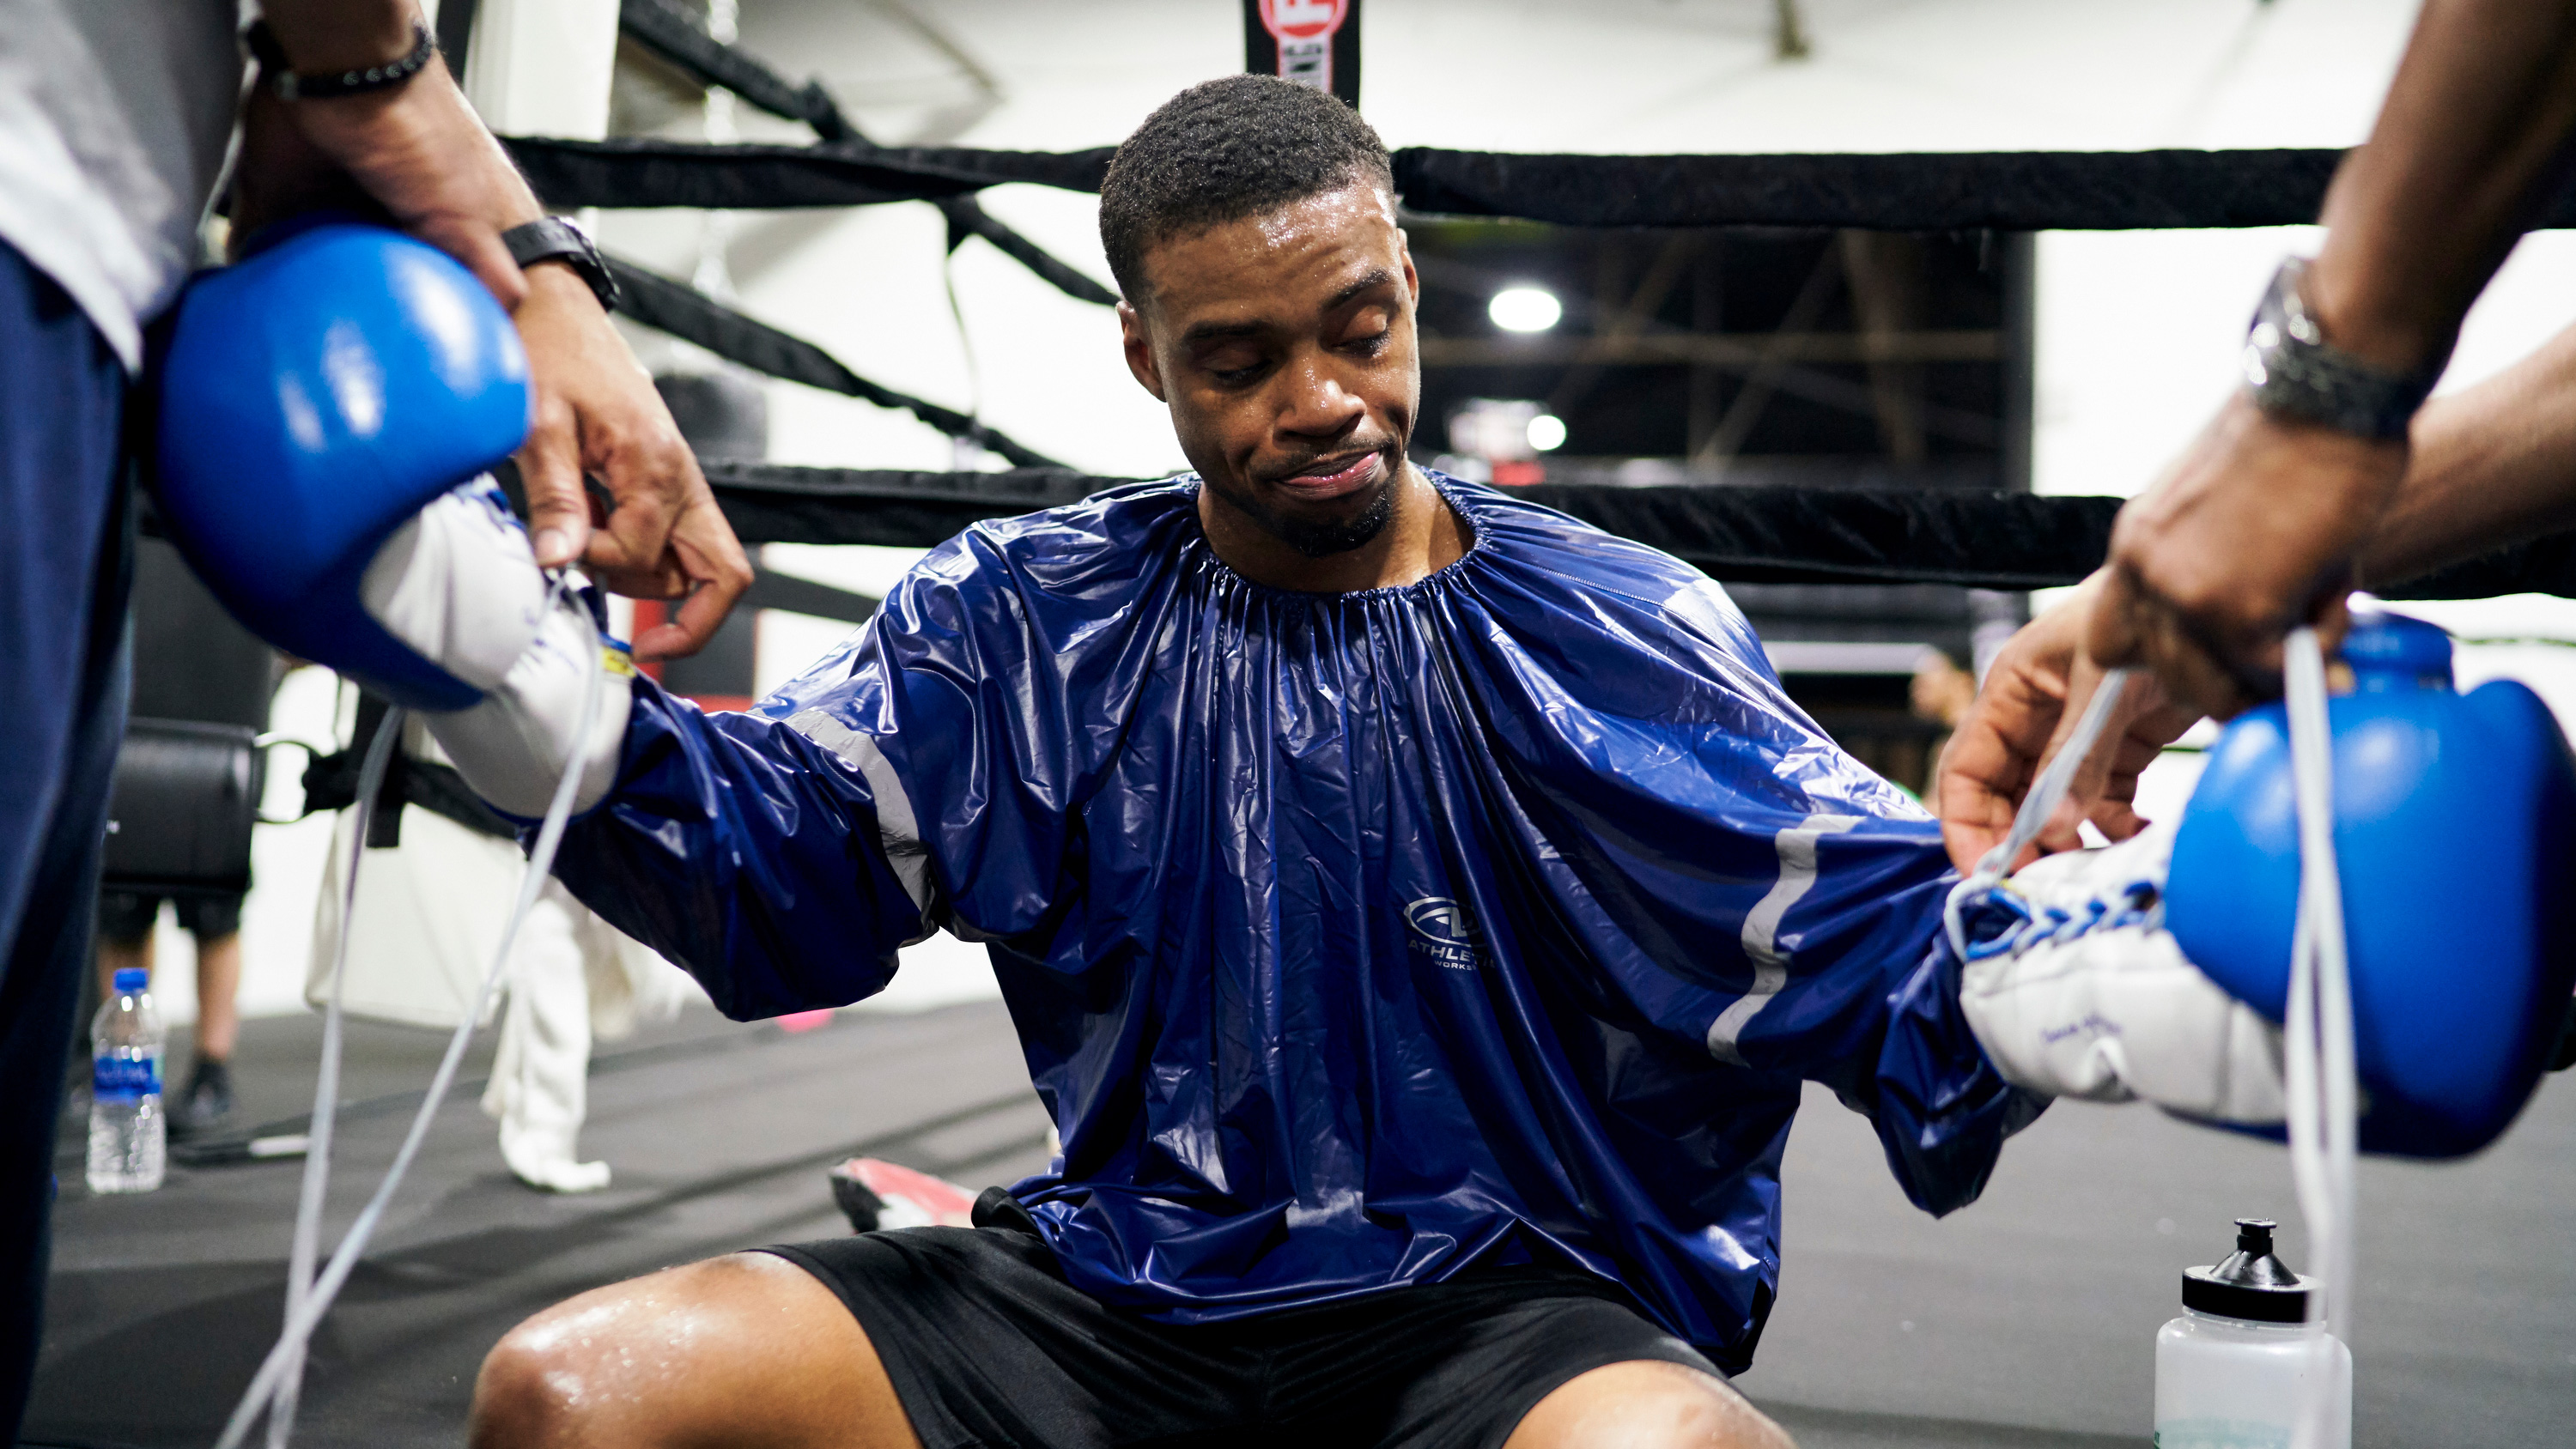 For Errol Spence Jr , training is a family affair